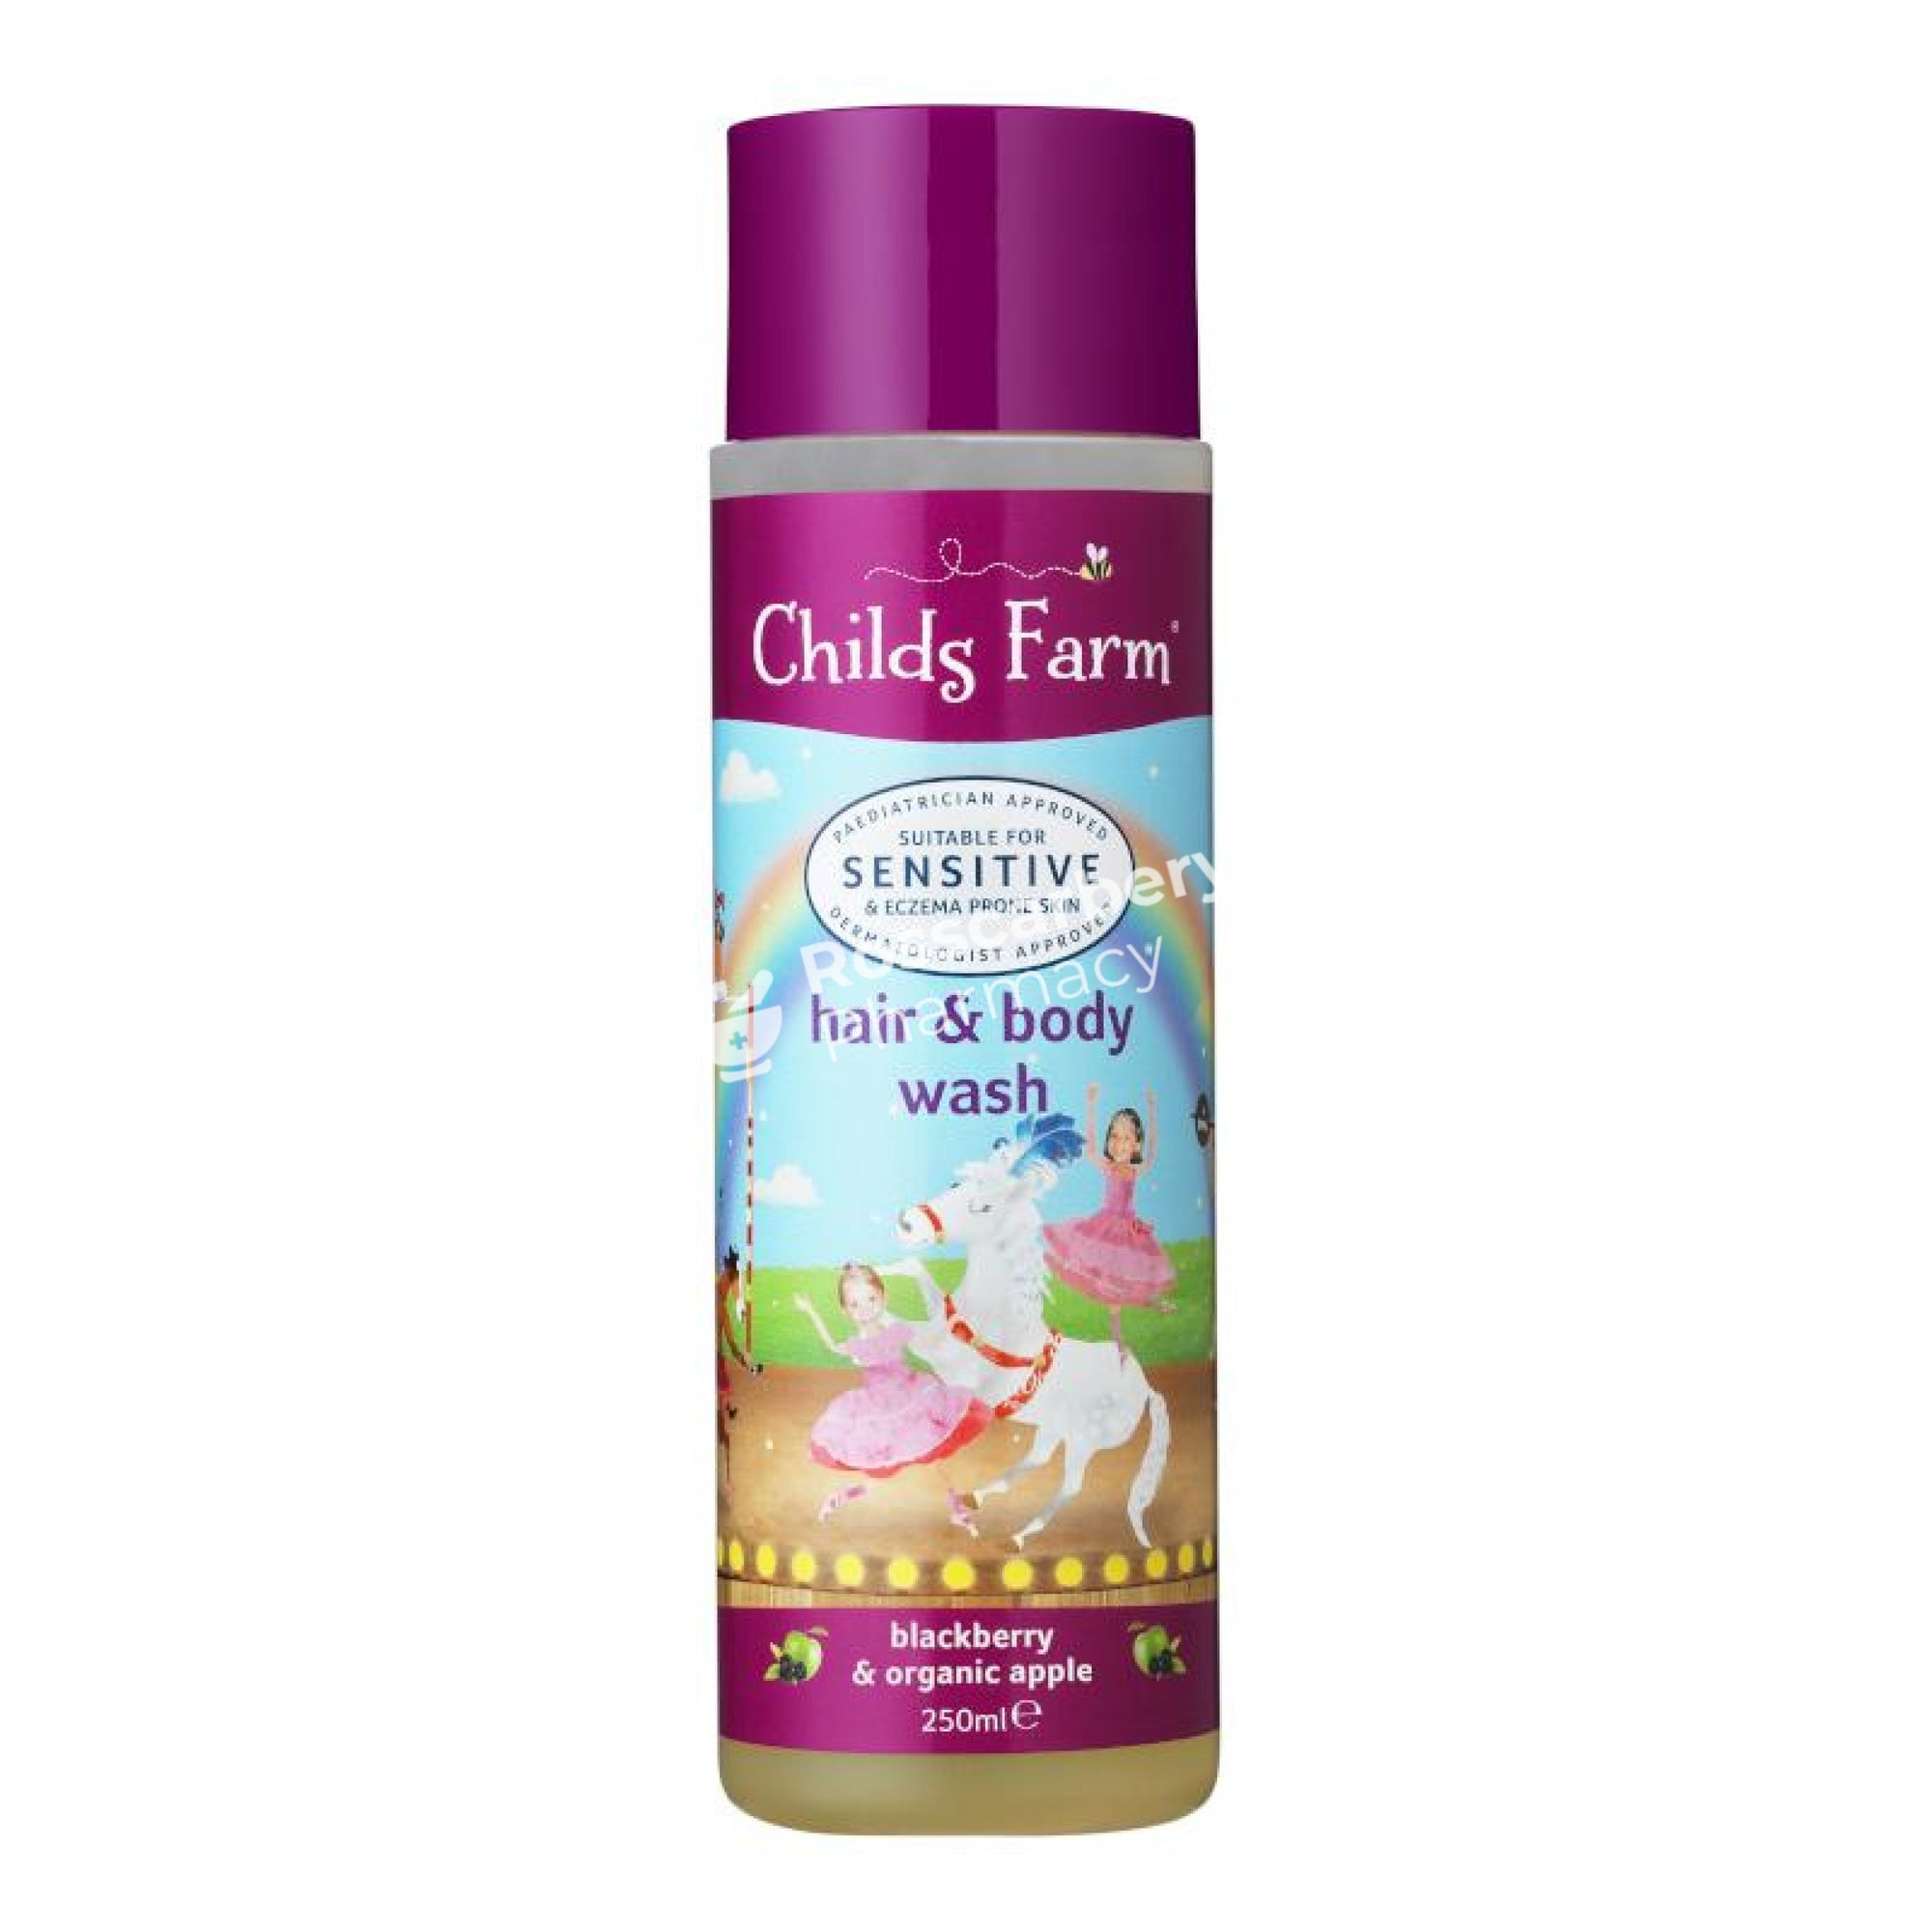 Childs Farm Hair & Body Wash - Blackberry Organic Apple Baby Bath